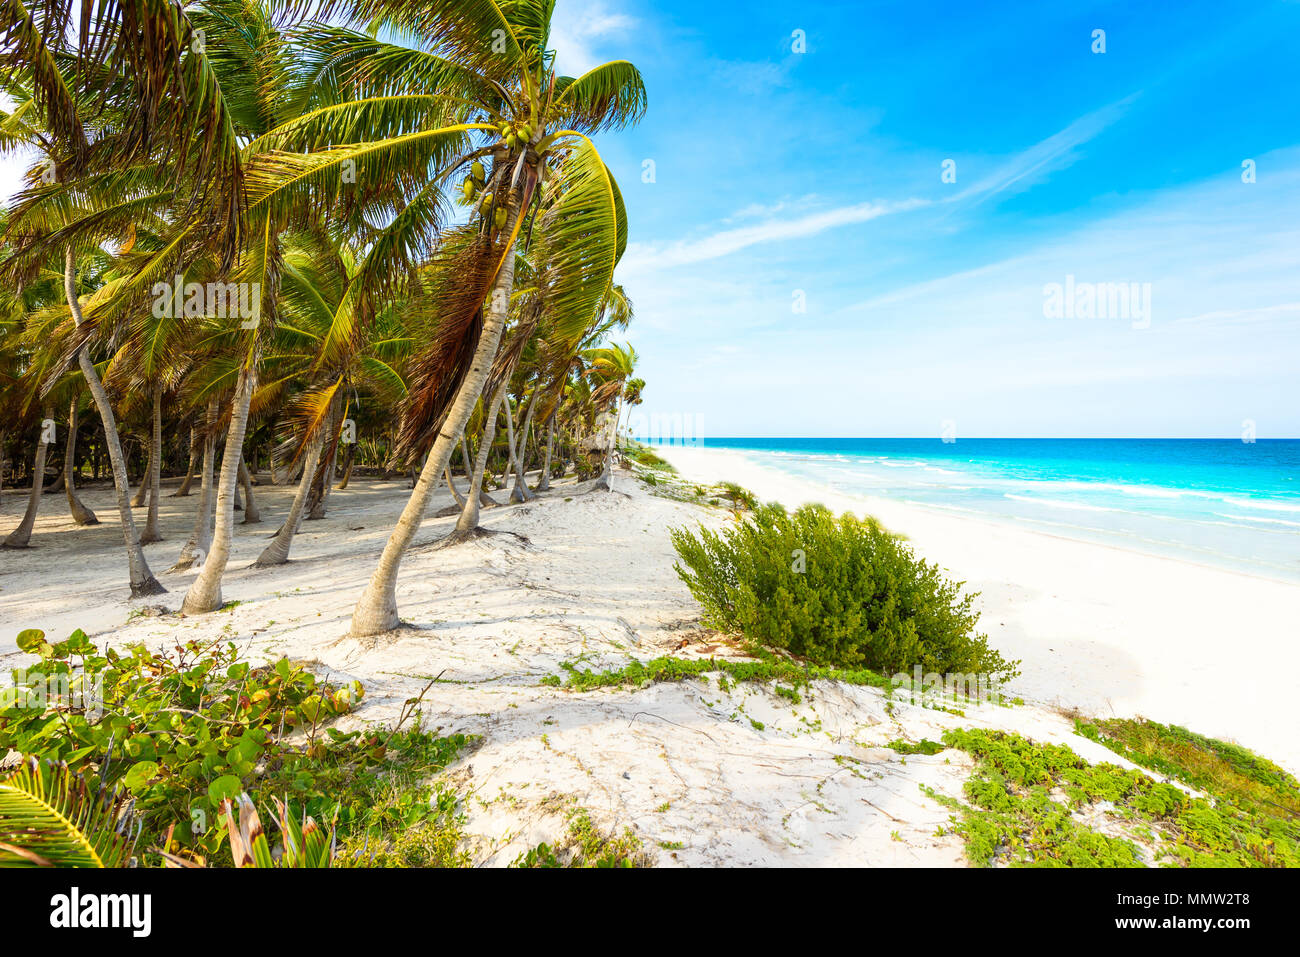 Explore The Beauty Of Caribbean: Playa Aruba Stock Photos & Playa Aruba Stock Images